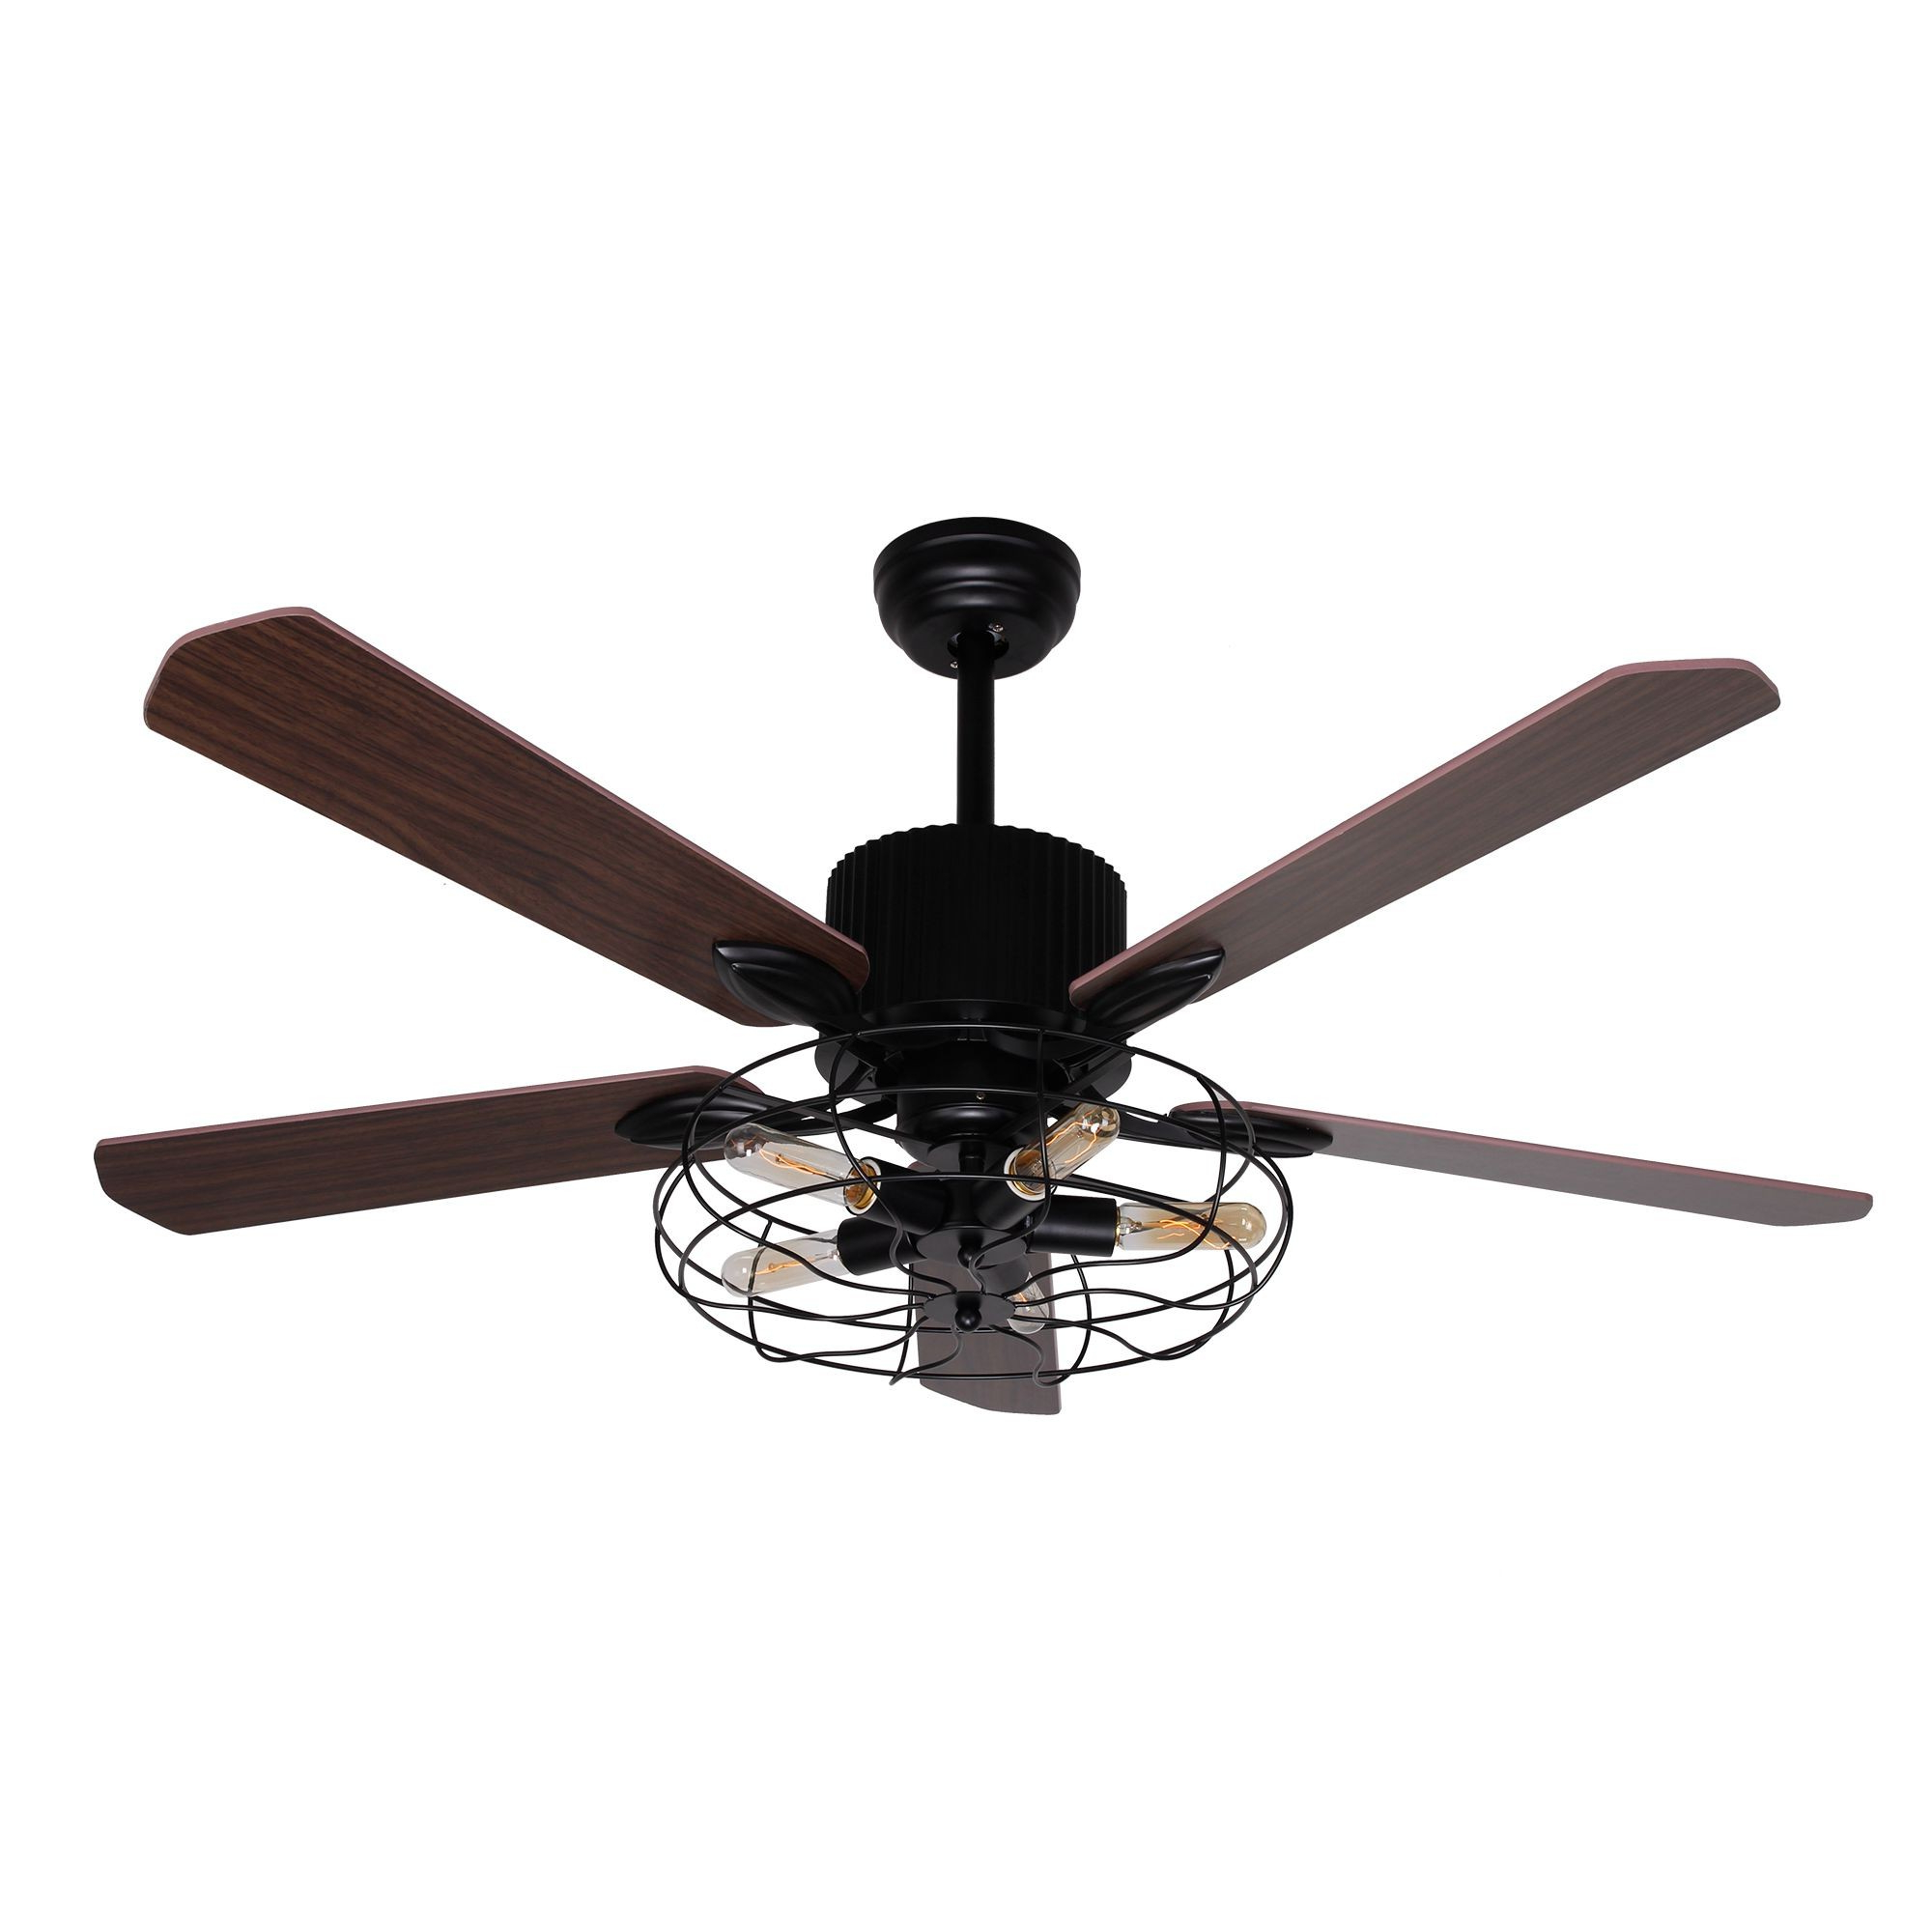 """52"""" Roberts Industrial Caged Chandelier Ceiling Fan With Light And Remote  Control, 5 Blades, Black Throughout Current Roberts 5 Blade Ceiling Fans (View 5 of 20)"""